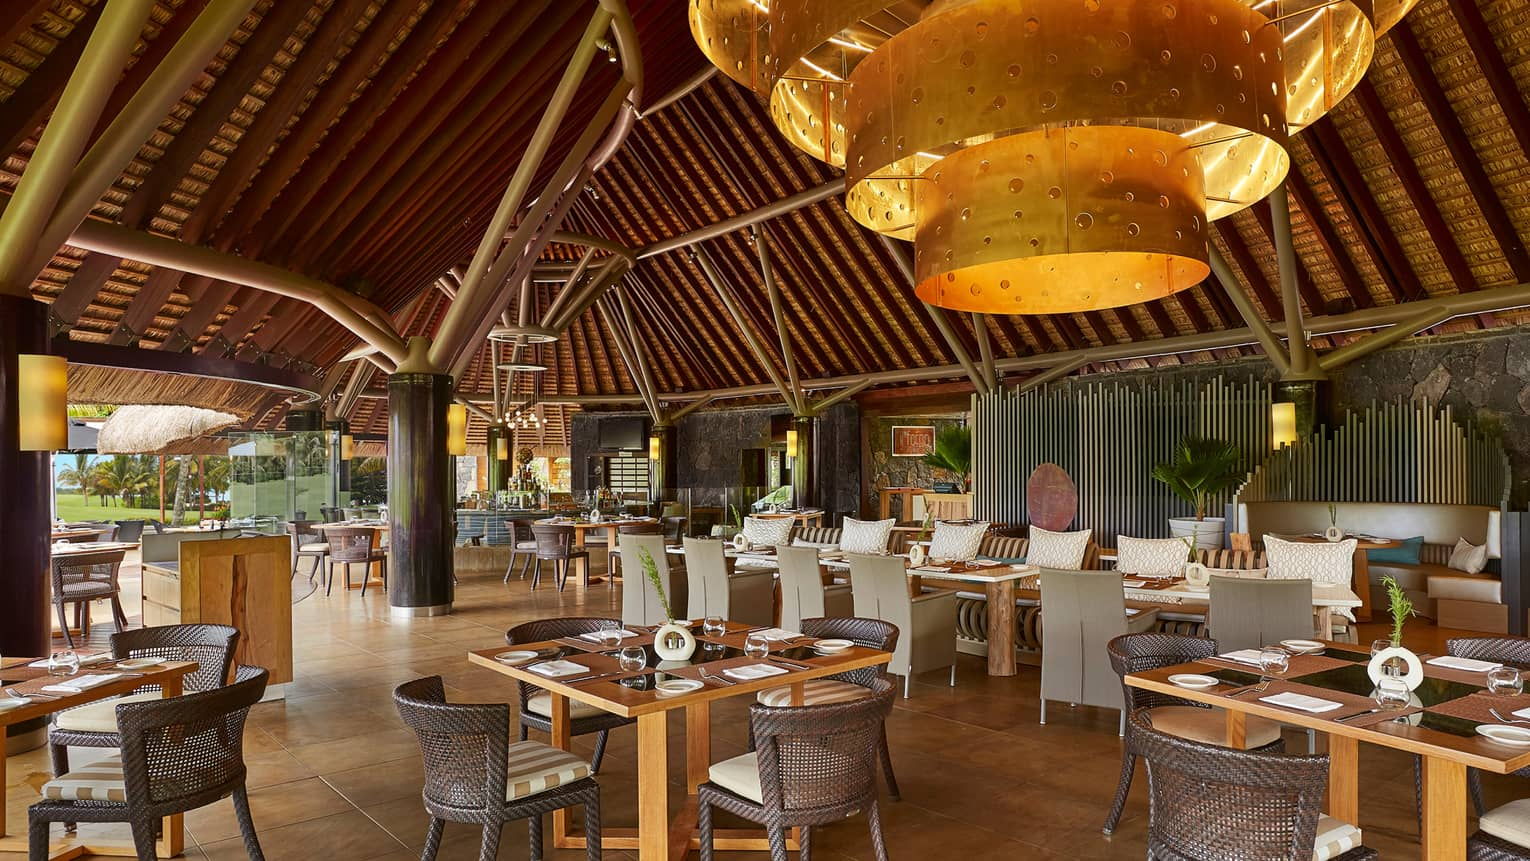 Modern gold lamp under bamboo thatched roof over Il Forno open-air dining room